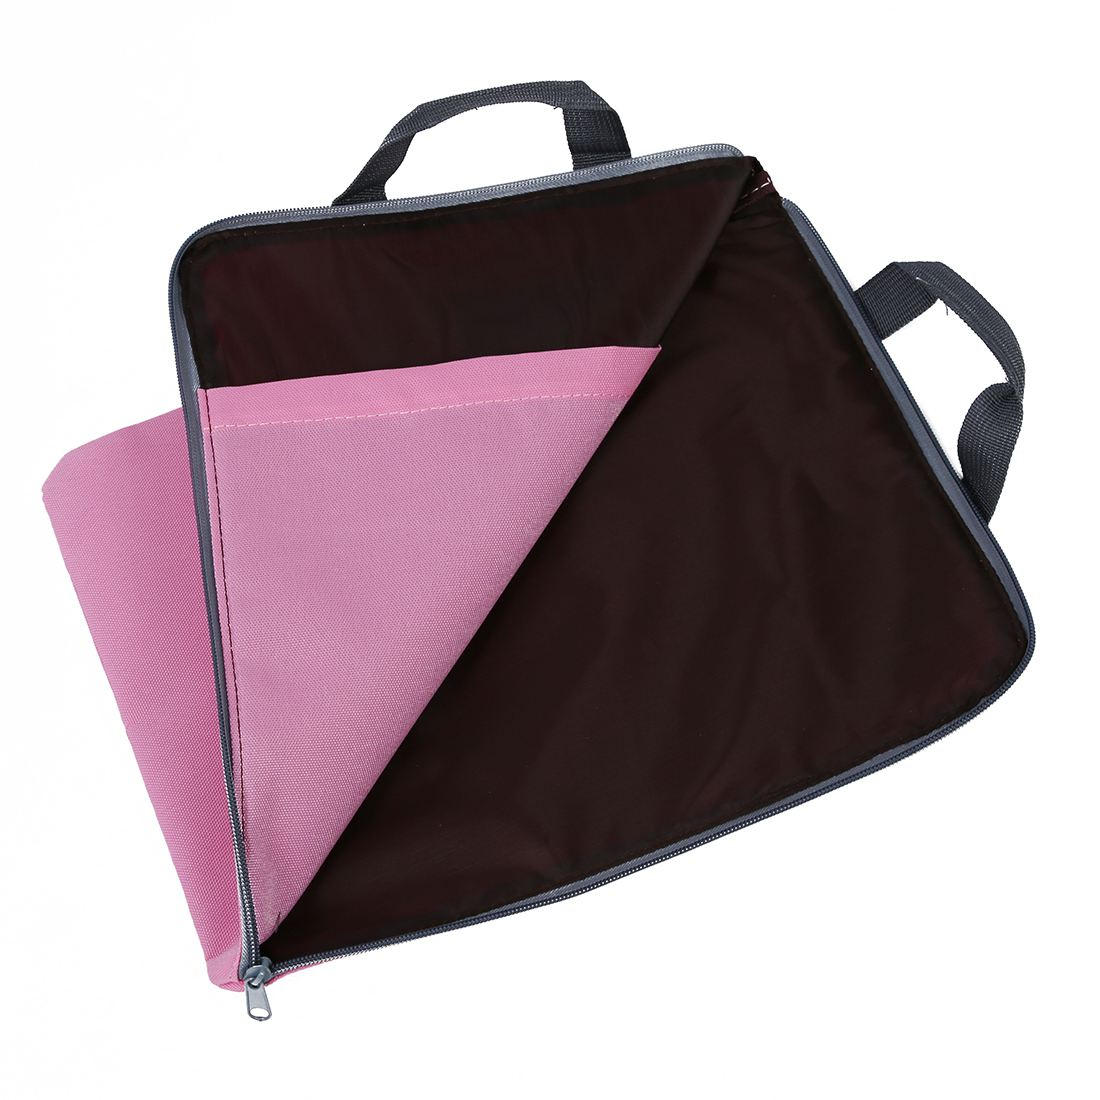 Simple-Solid-A4-Big-Capacity-Document-Bag-Business-Briefcase-Storage-File-F-W3J7